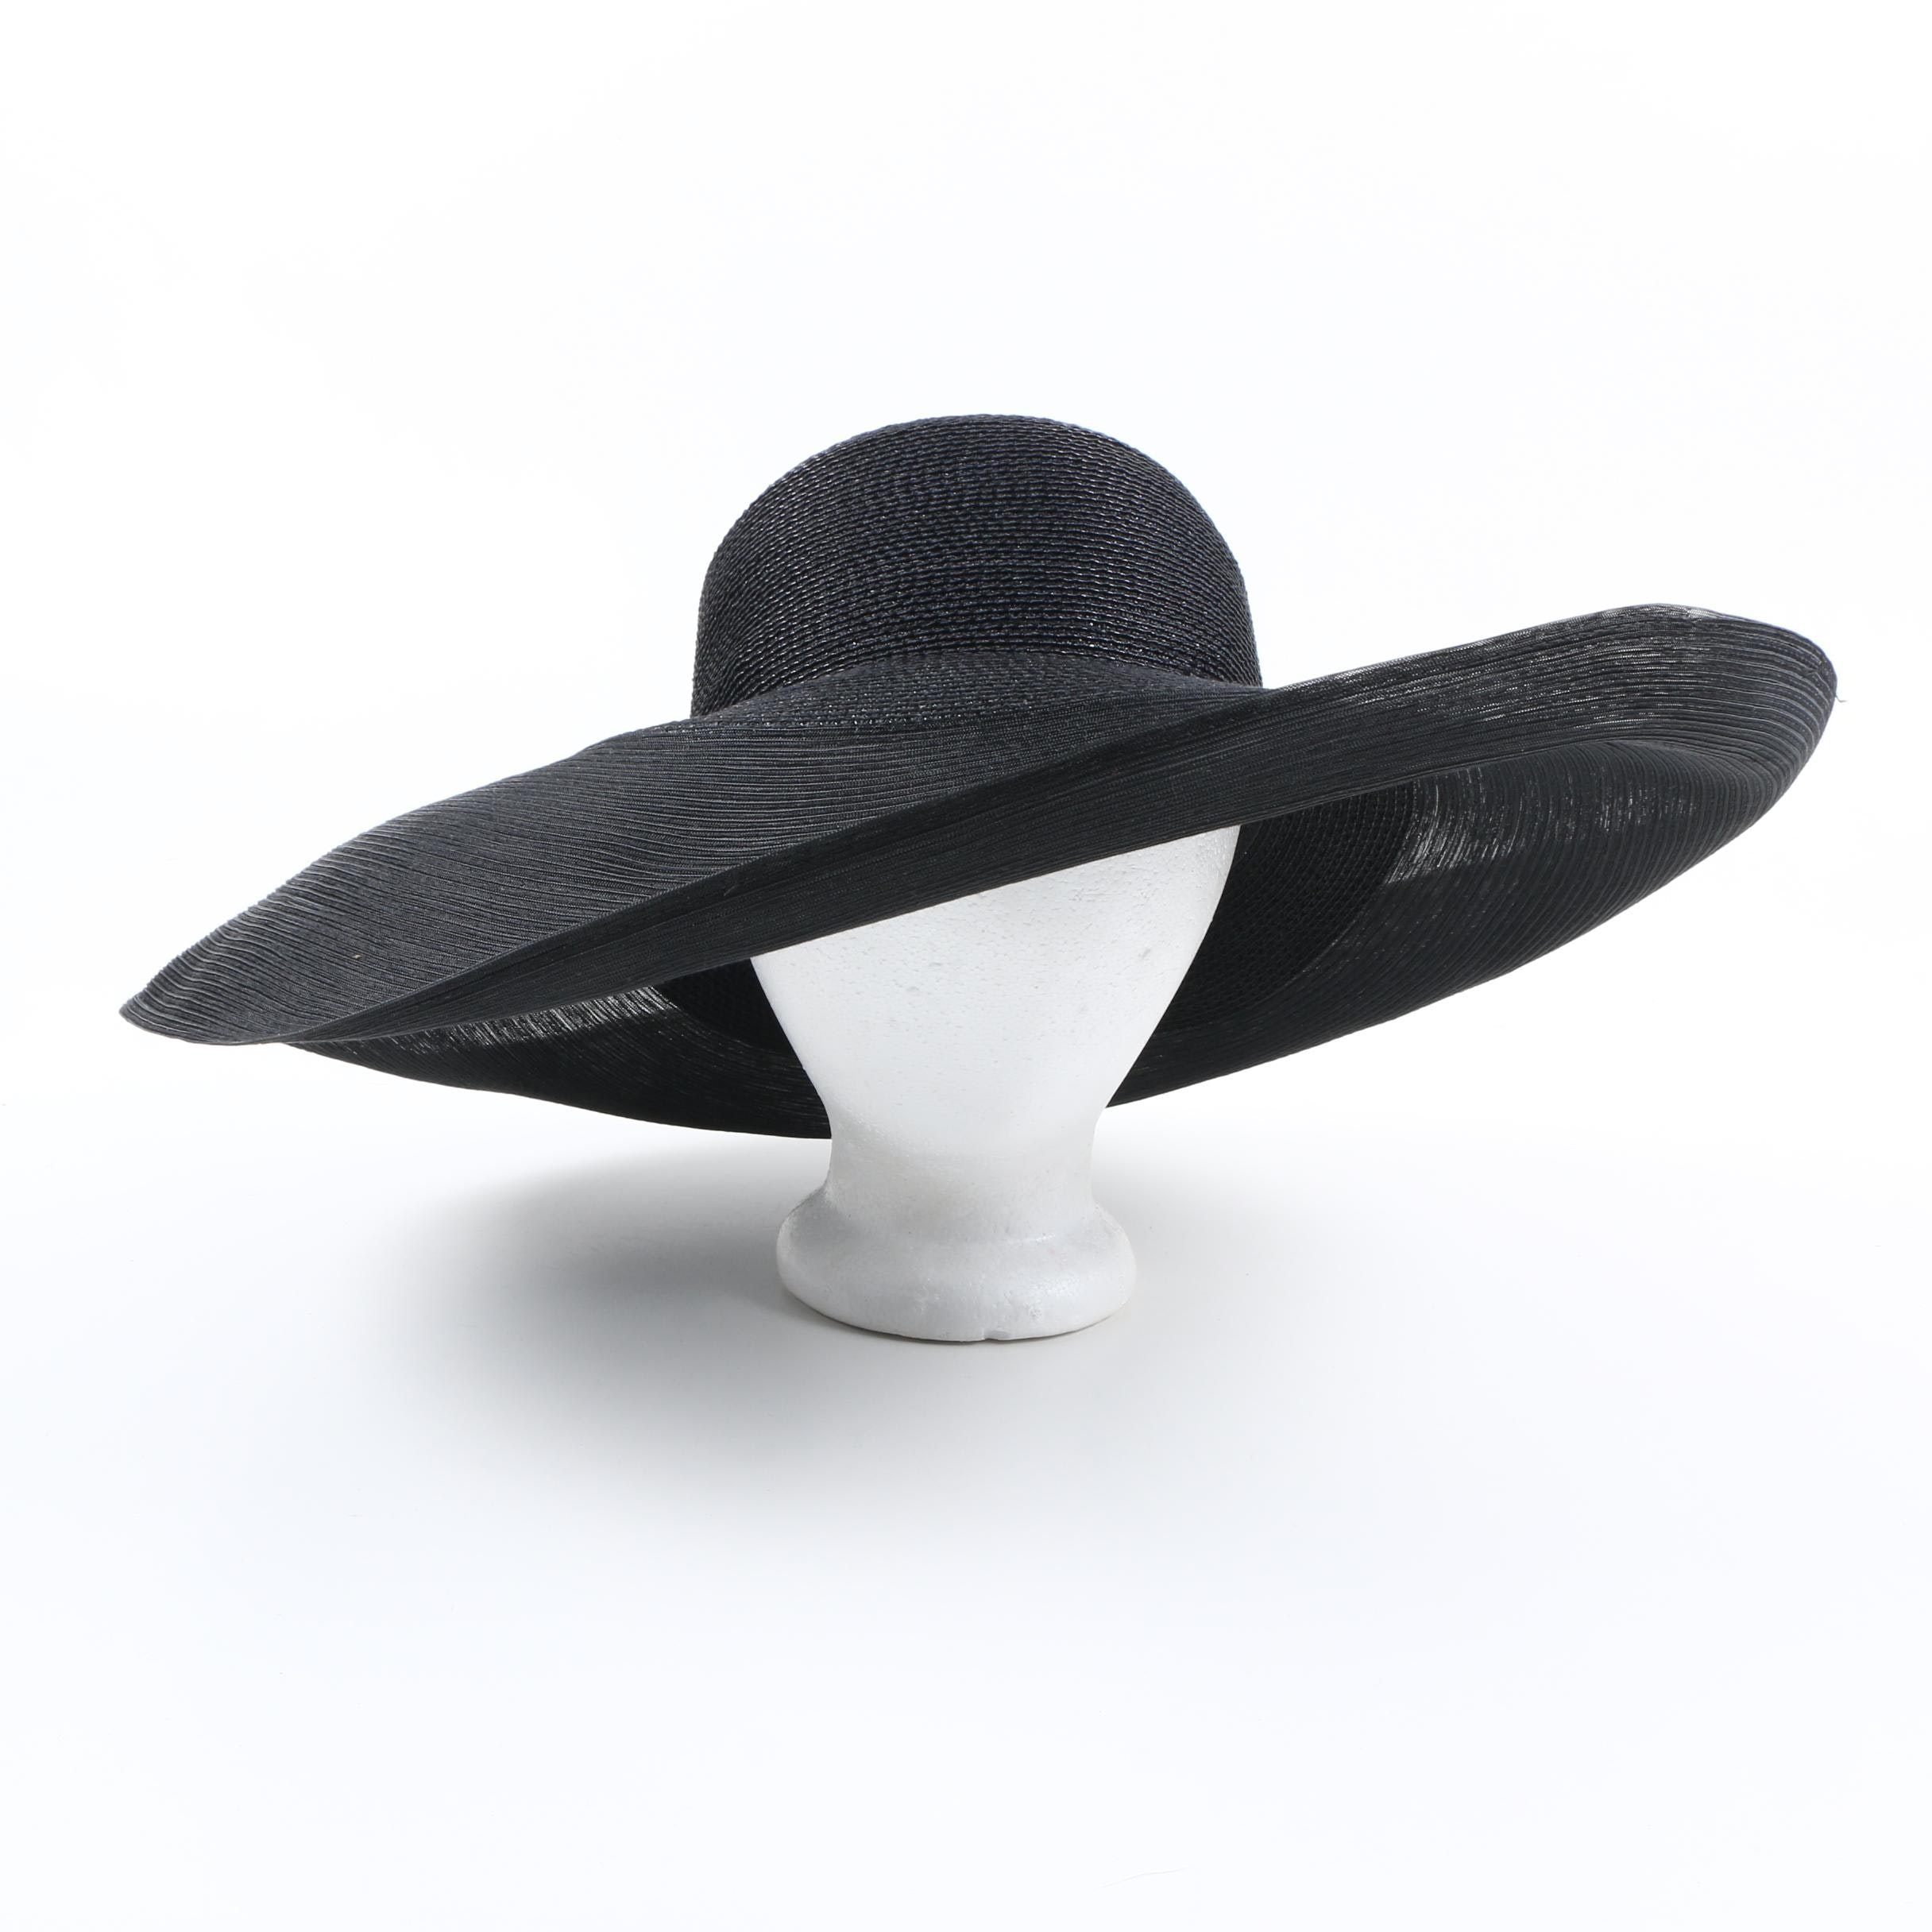 Vintage Wide Brim Black Straw Hat by Gabriele Amar for Frank Olive